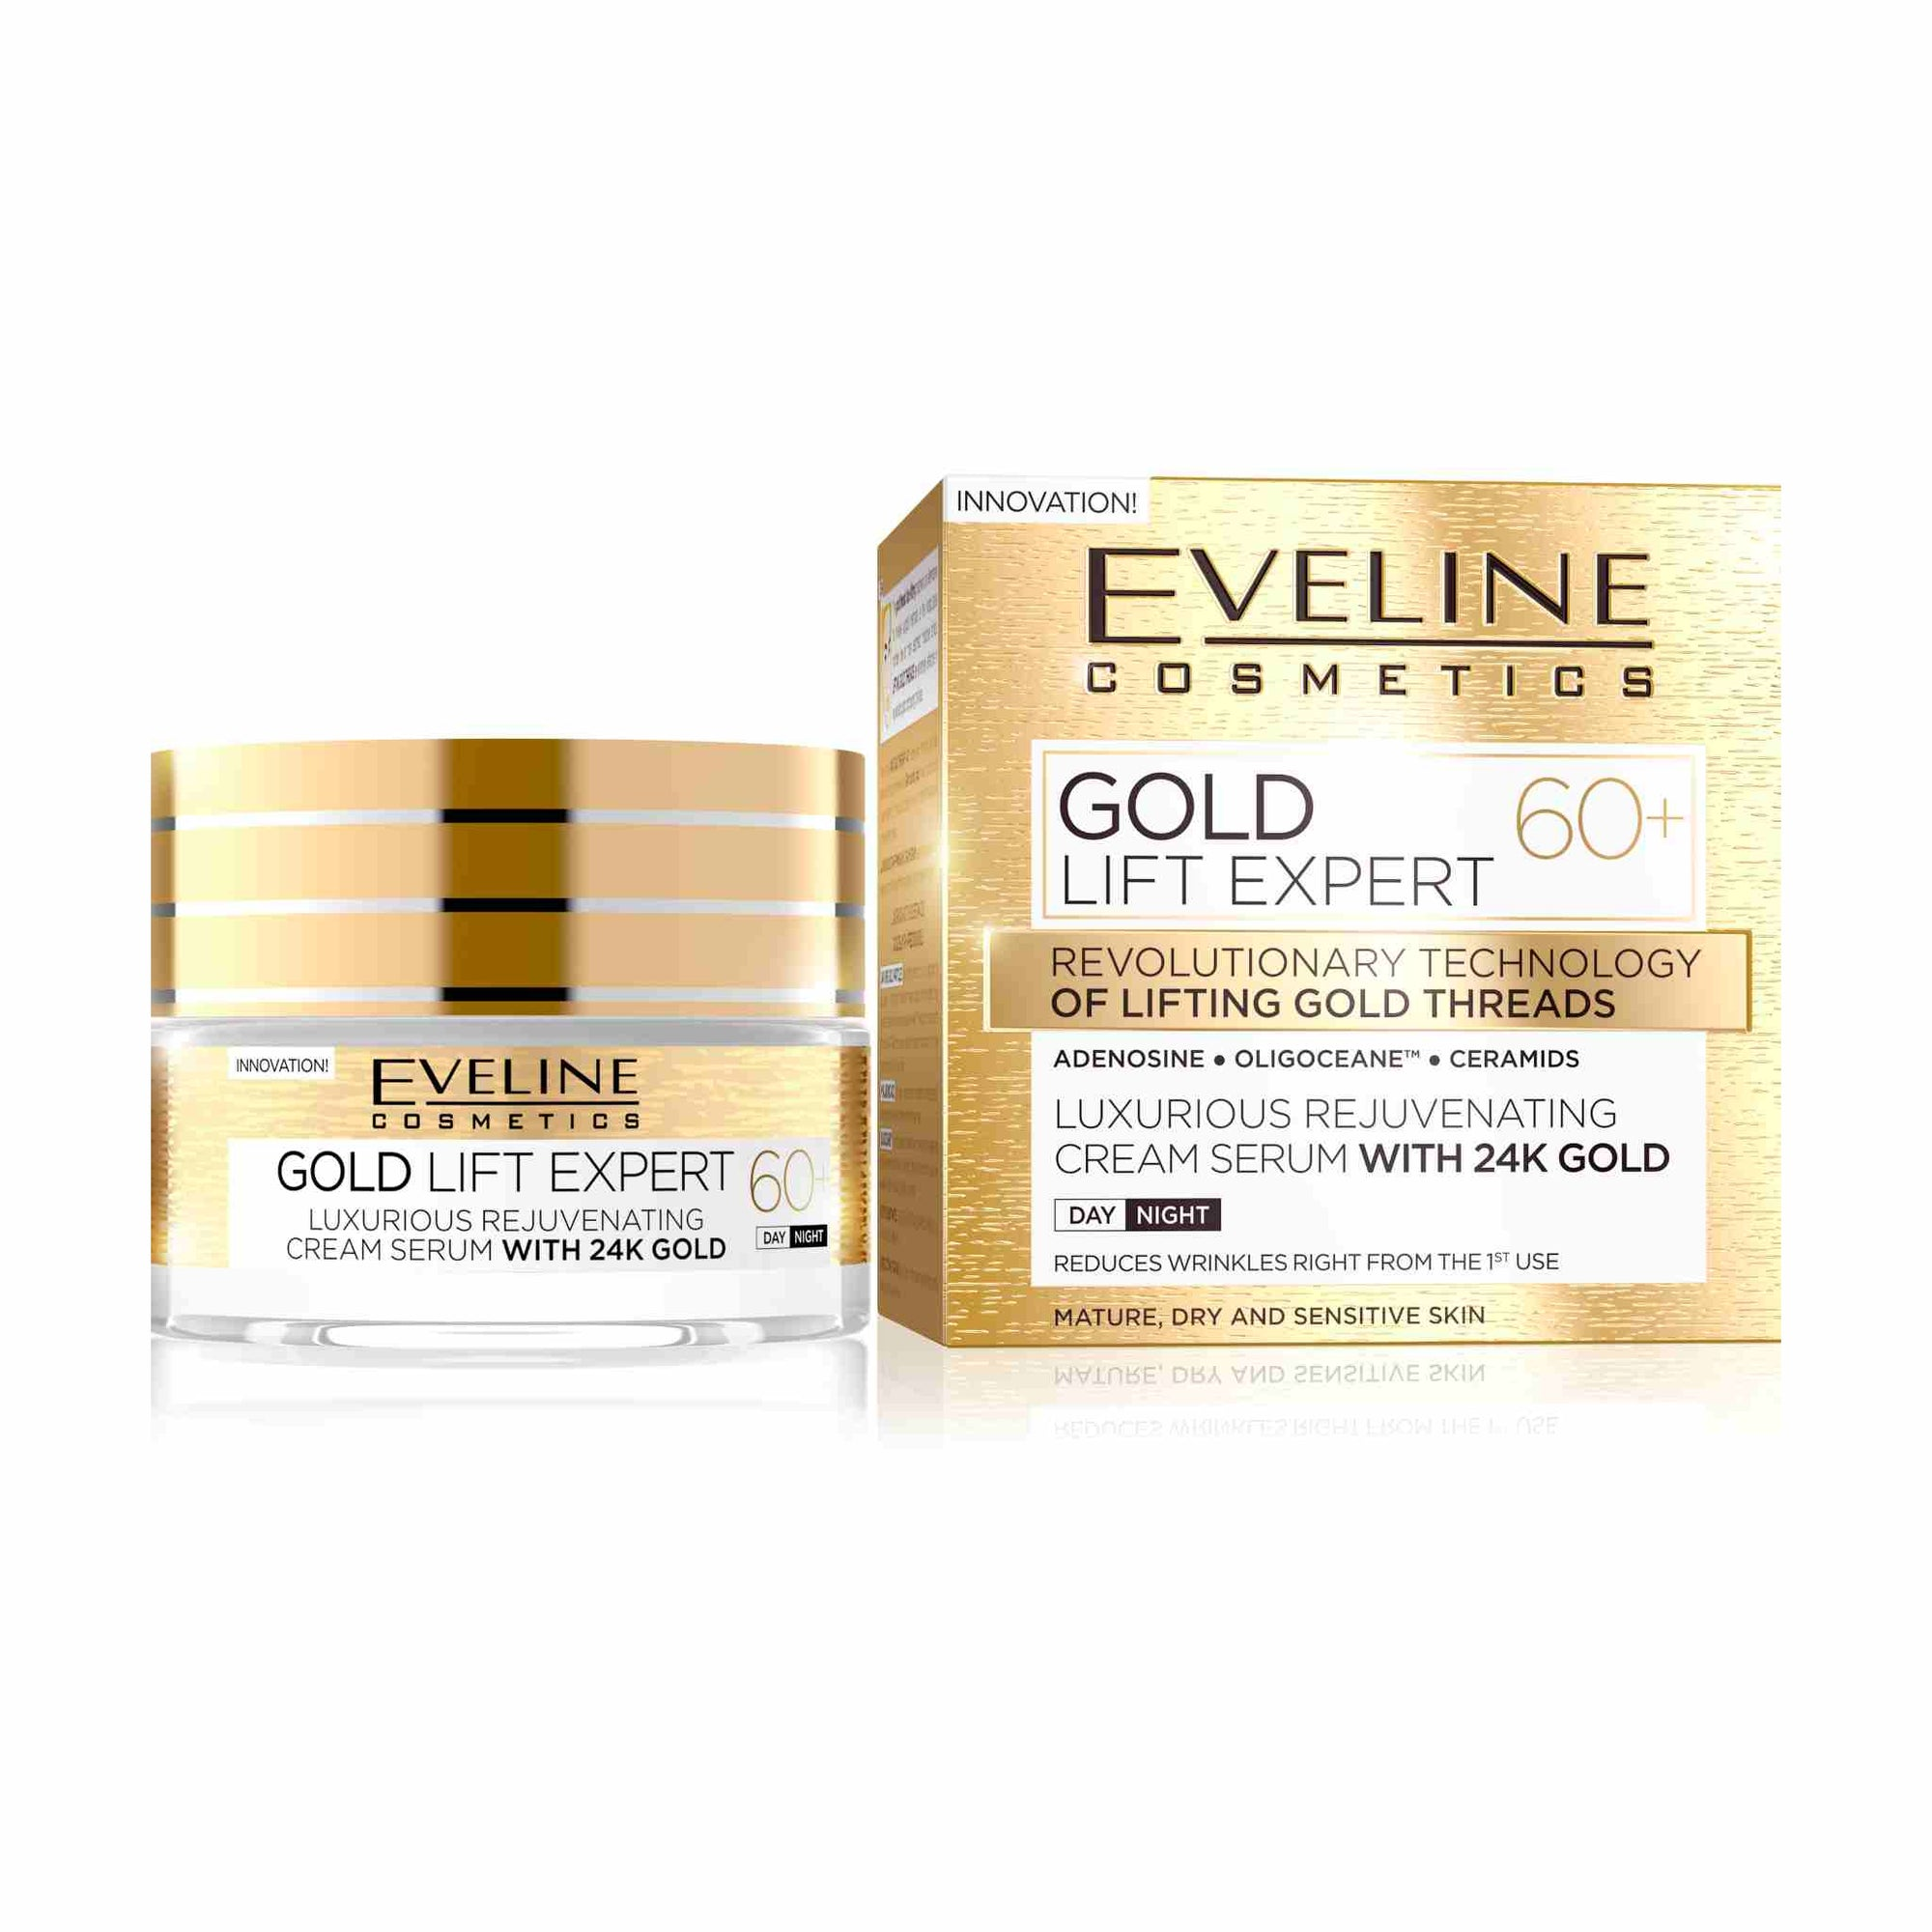 Gold Lift Expert Rejuvenating Cream Serum with 24k Gold 60+